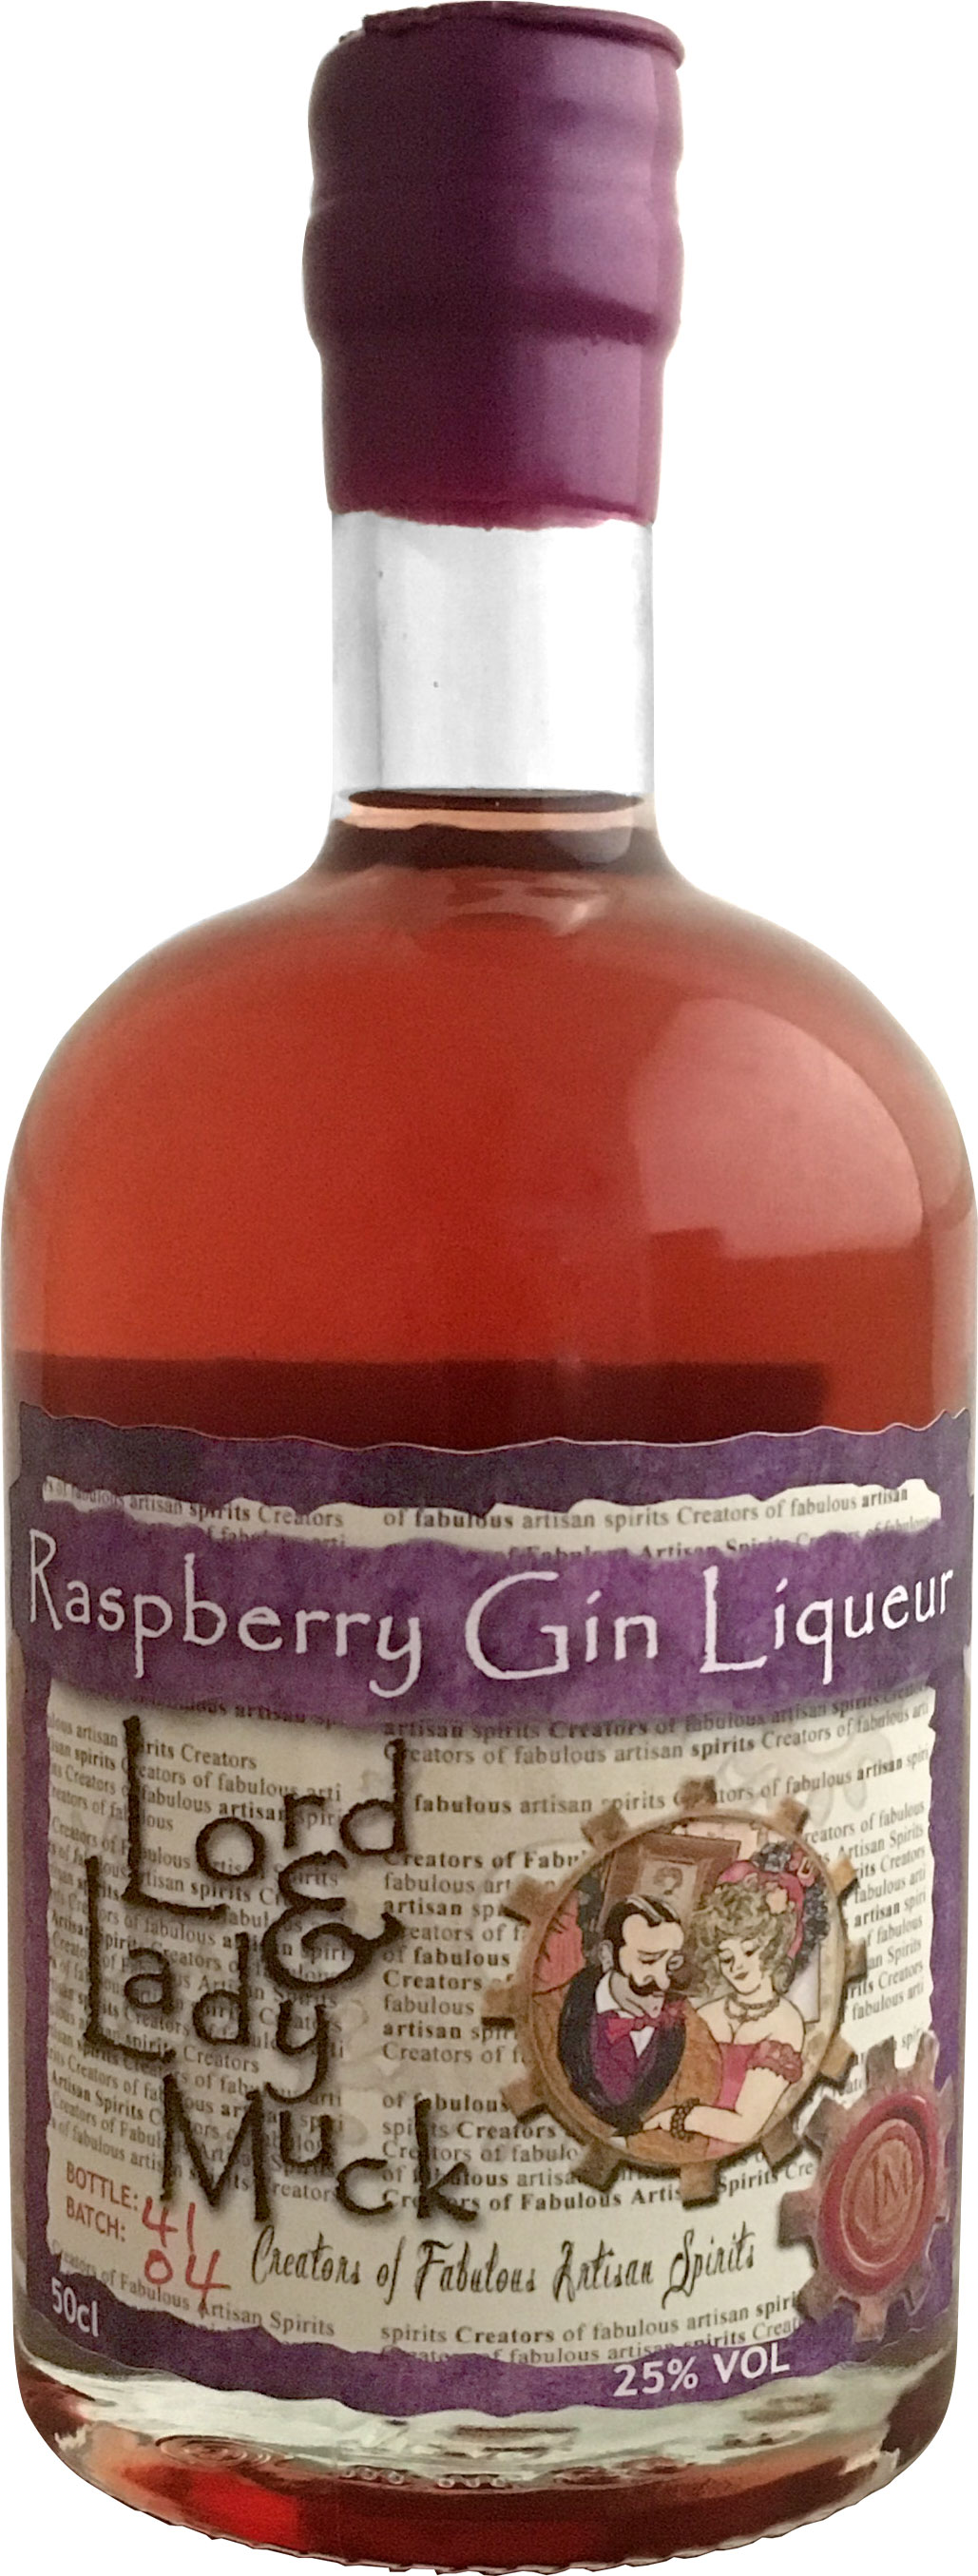 Lord & Lady Muck - Raspberry Gin Liqueur 50cl Bottle